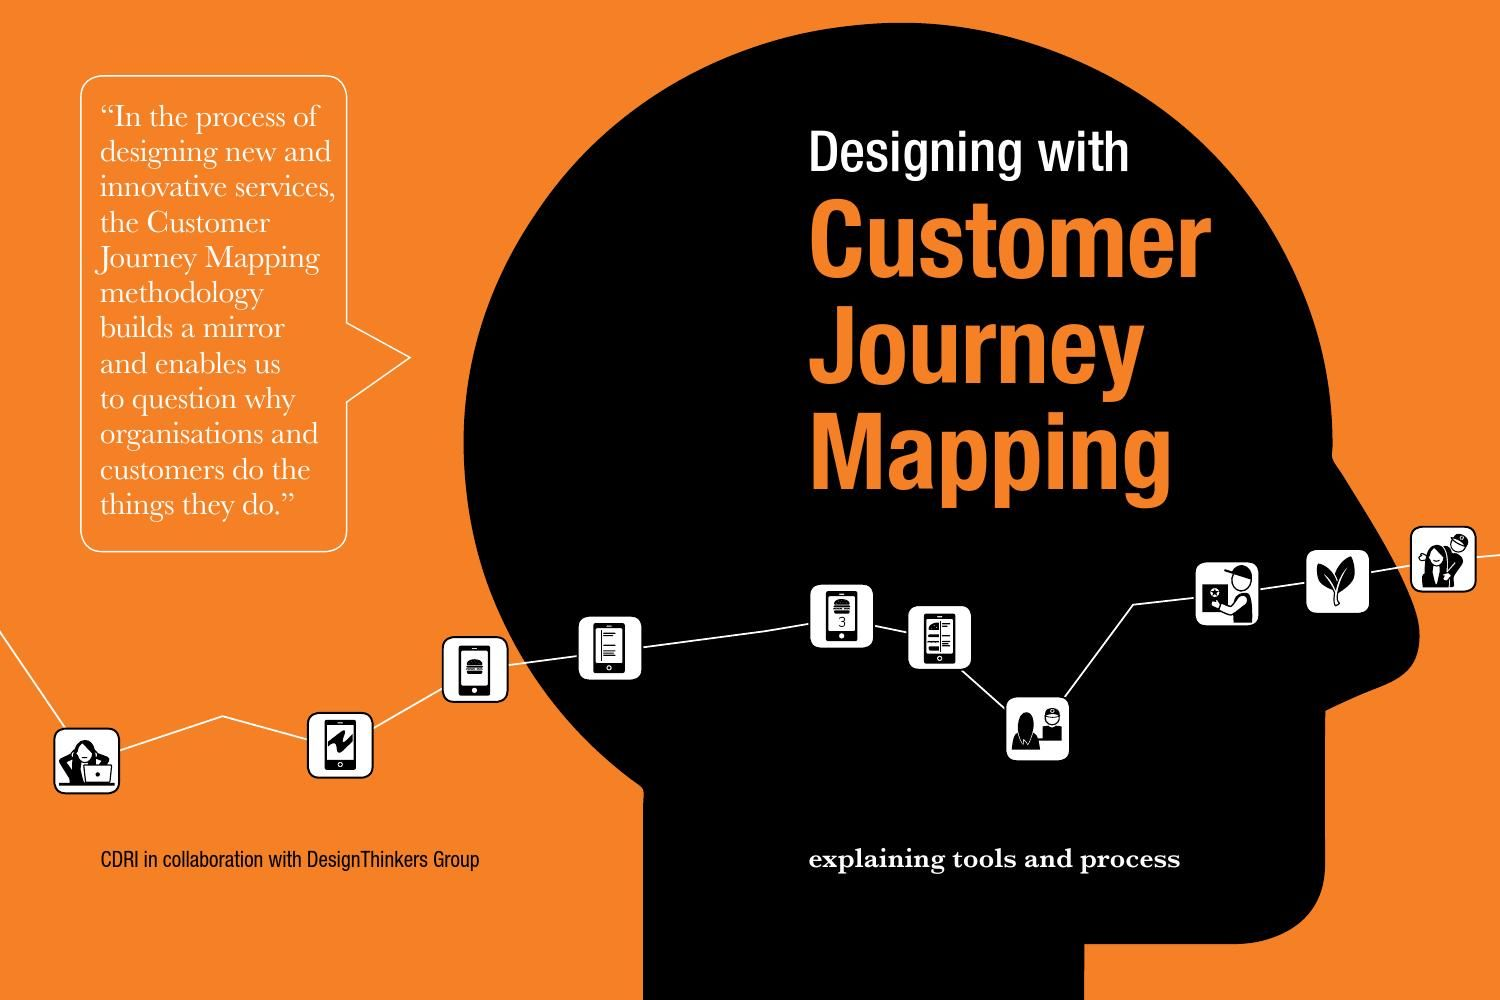 Designing With Customer Journey Mapping By Designthinkers Group